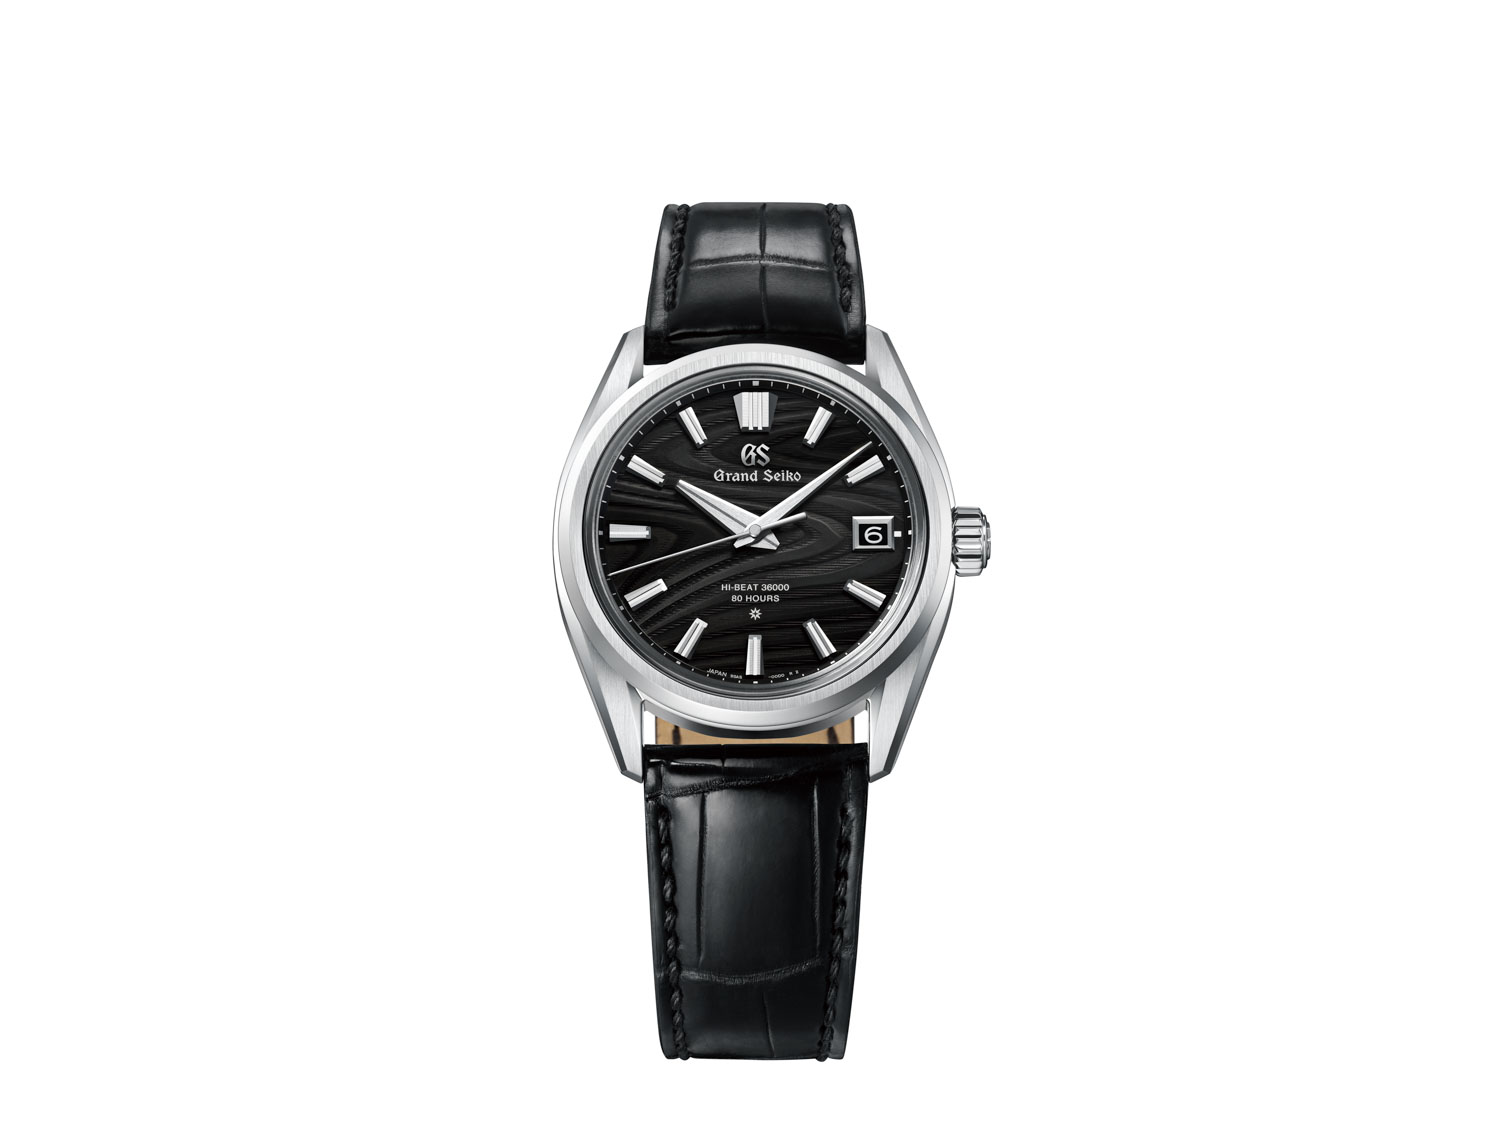 The Grand Seiko Heritage Collection Series 9 SLGH007 will be made in limited run of 140 pieces and will be available at Grand Seiko Boutiques and selected Grand Seiko retailers worldwide in July 2021